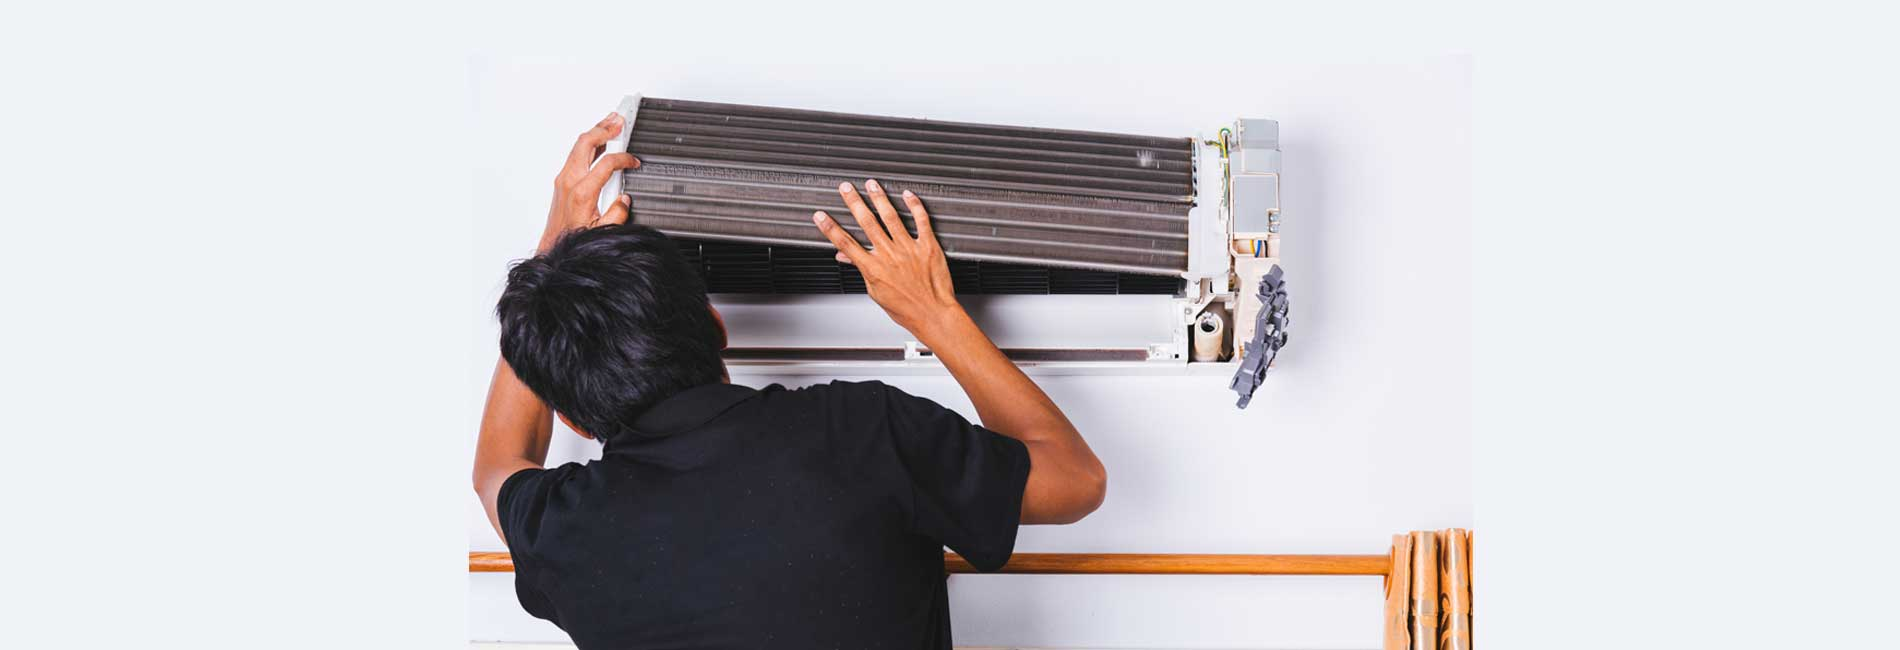 Air Conditioner Service in Alandur